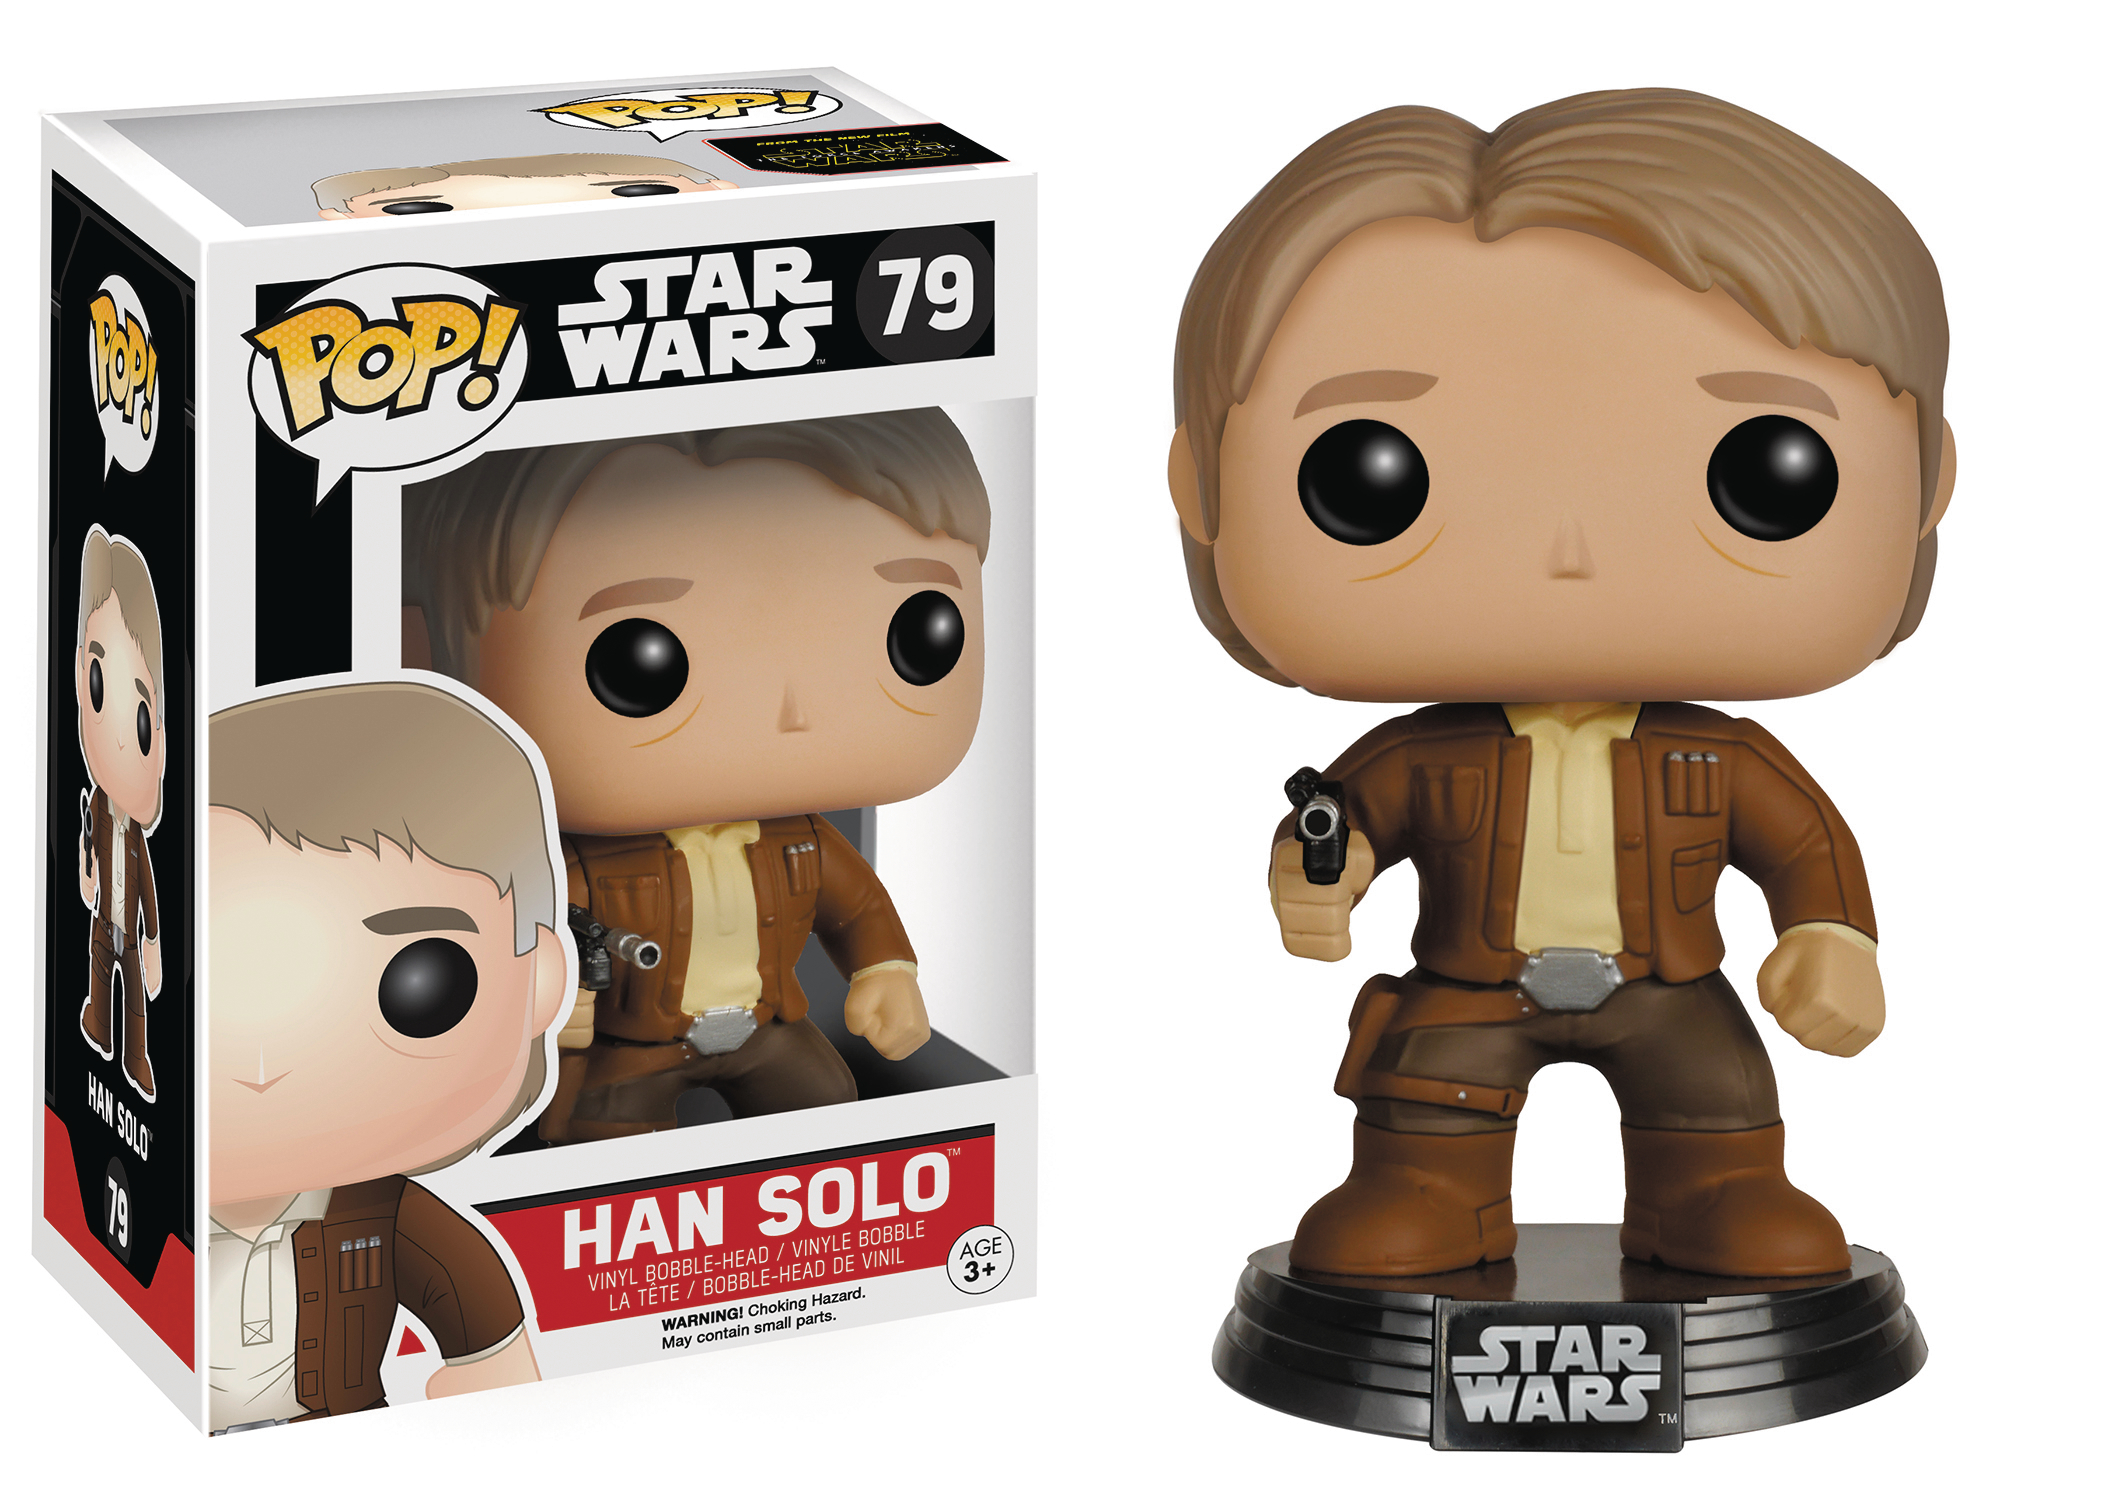 POP STAR WARS E7 HAN SOLO VINYL FIG